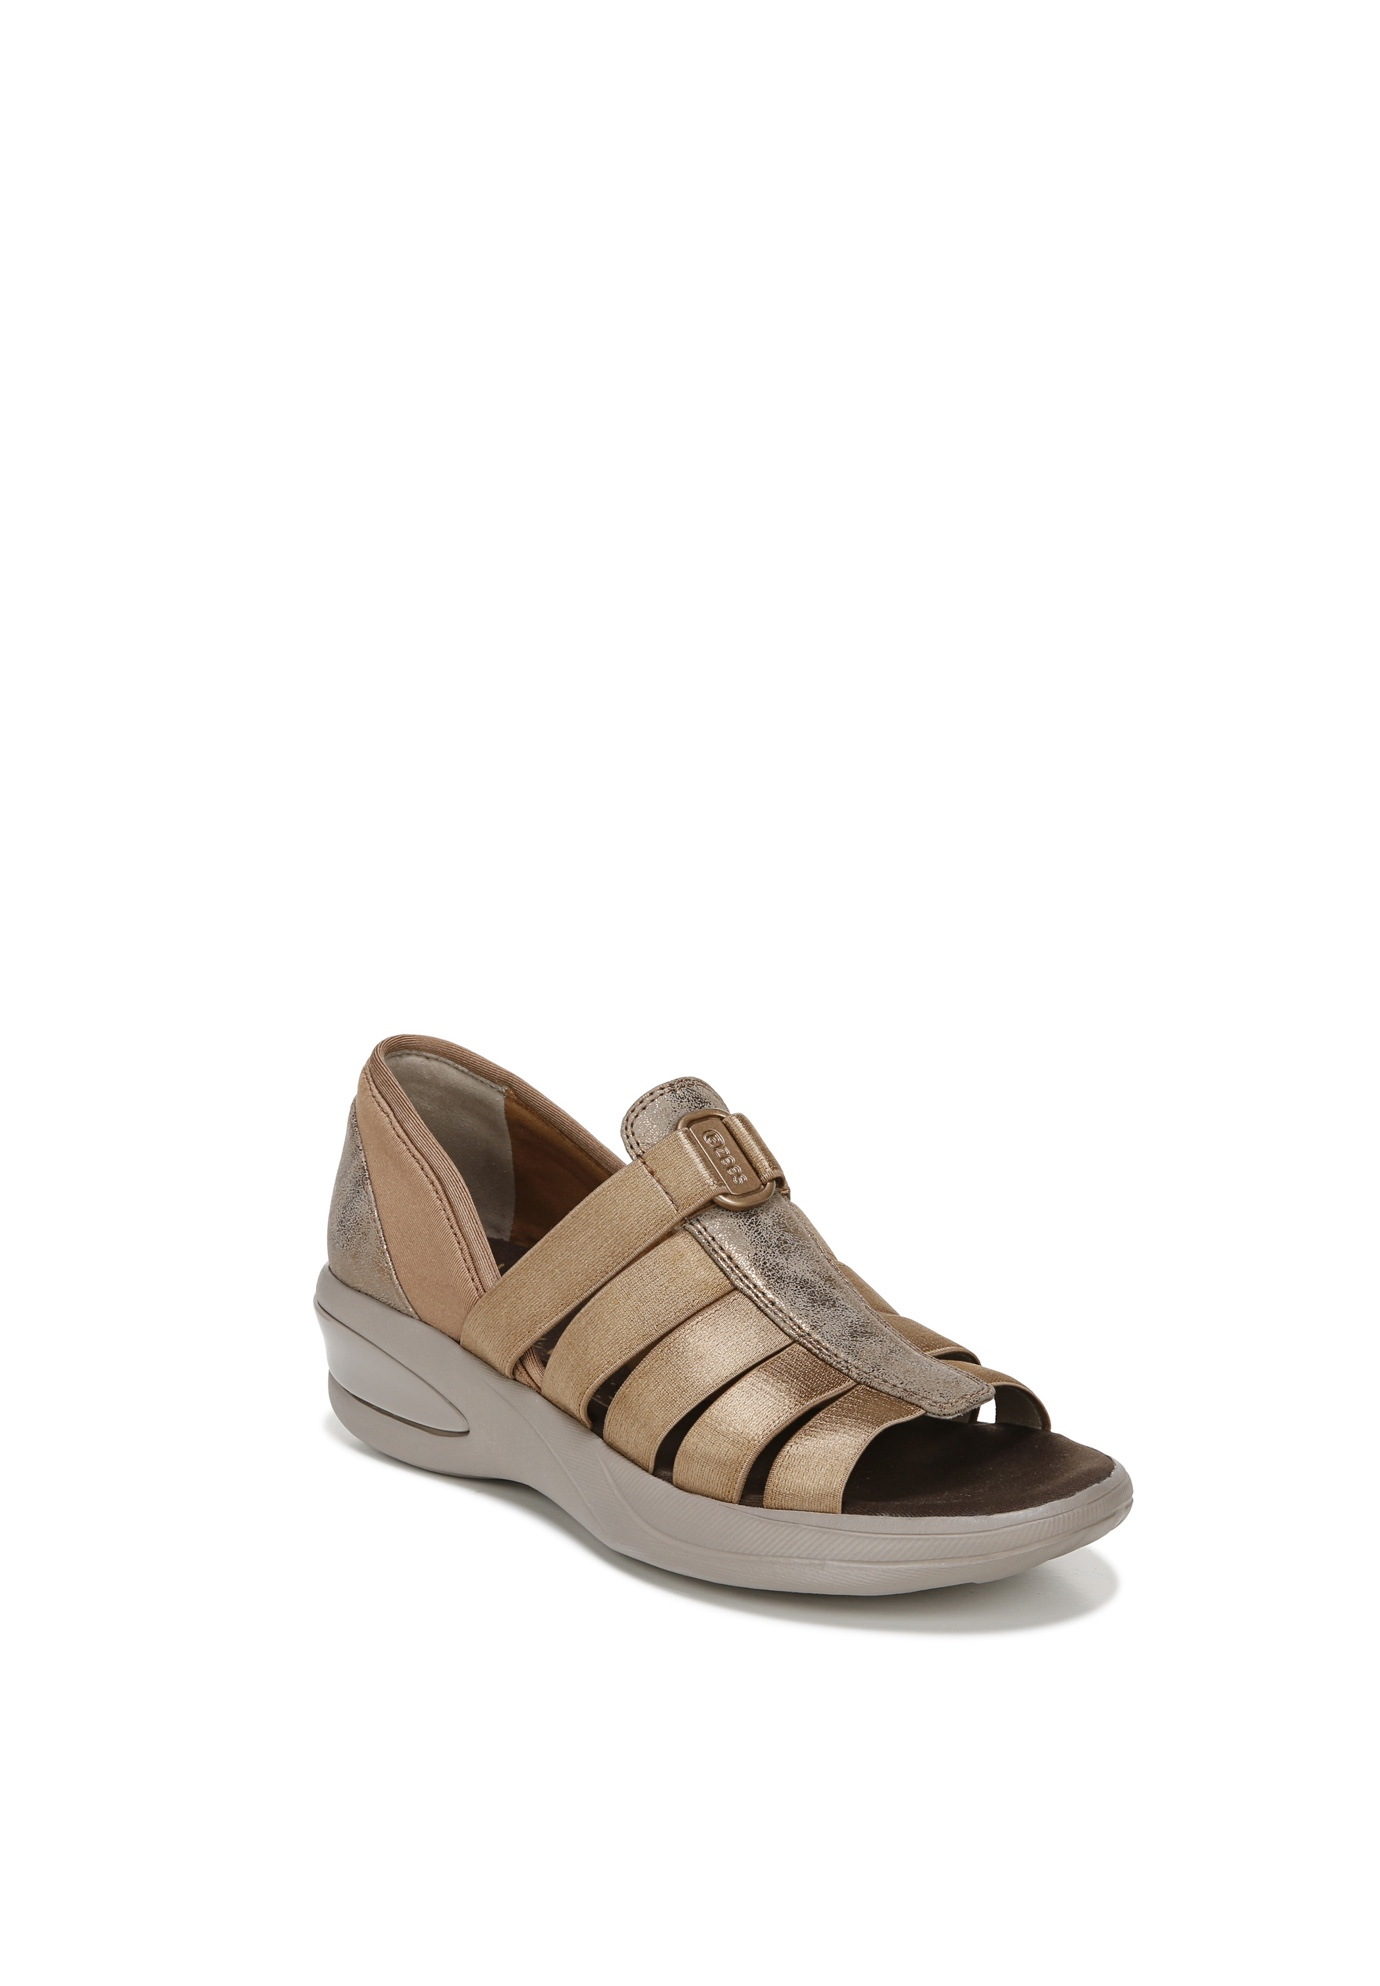 Frenzy Sandals ,